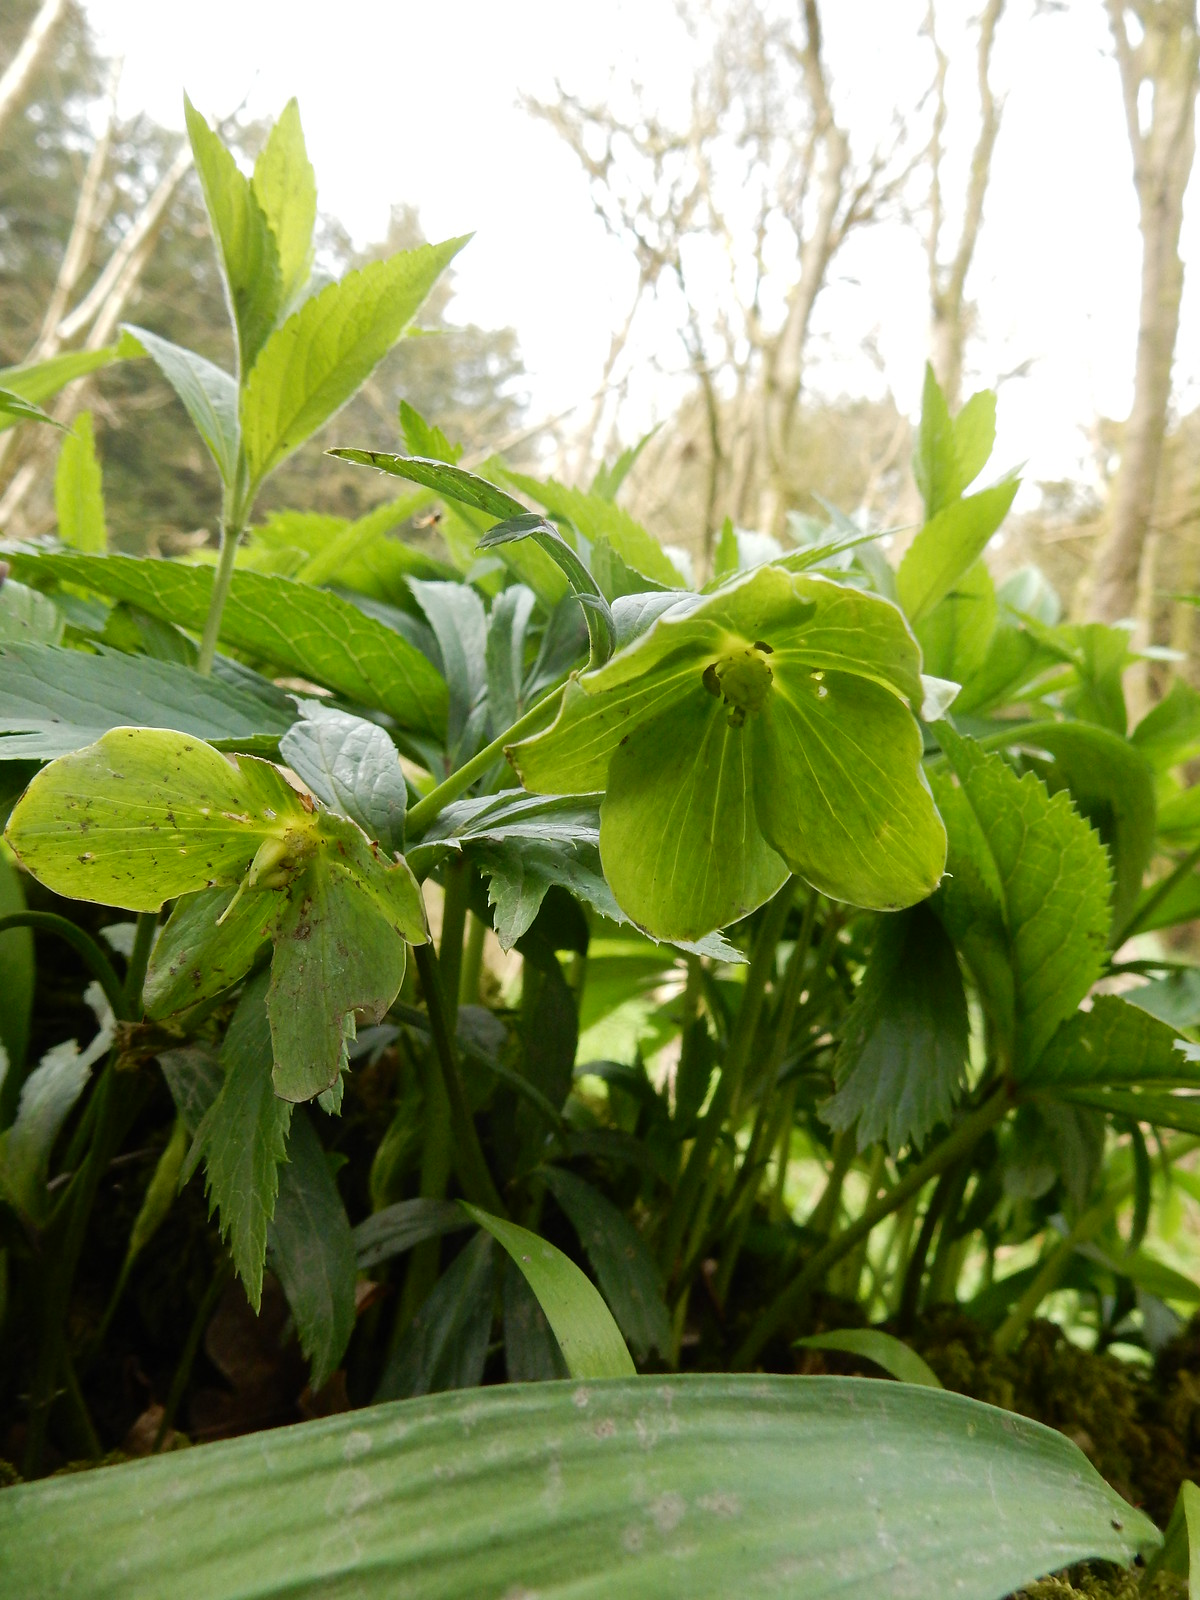 Green Hellebore flowers Sevenoaks Circular I think this one's more Green than Stinky. But let's see what the experts thinky!